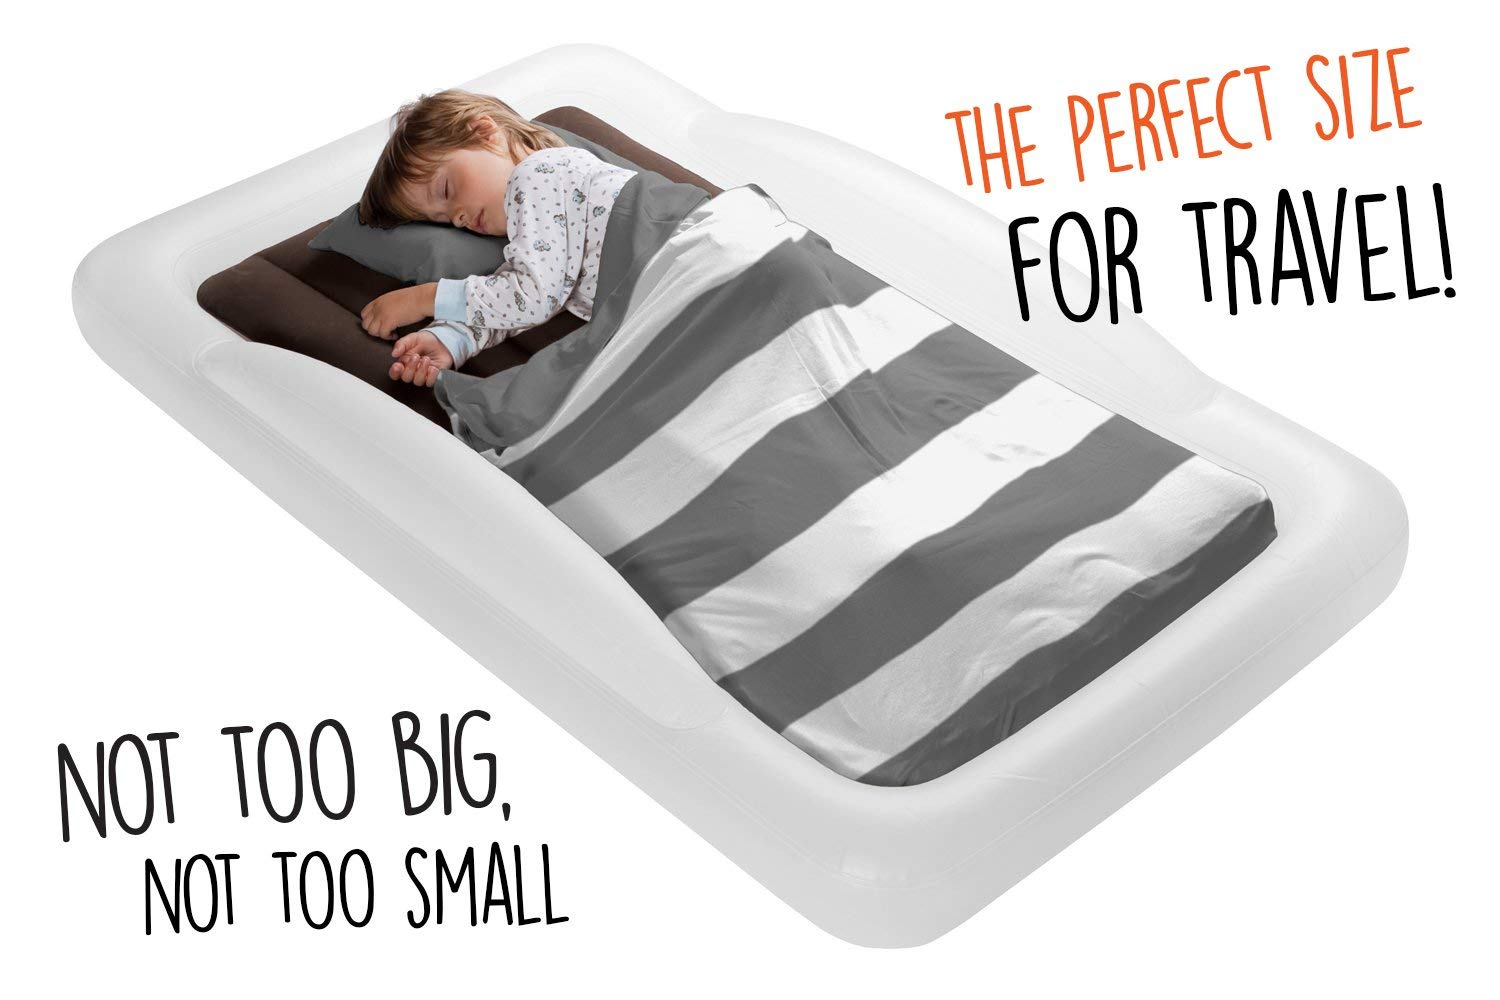 The Shrunks Toddler Travel Bed